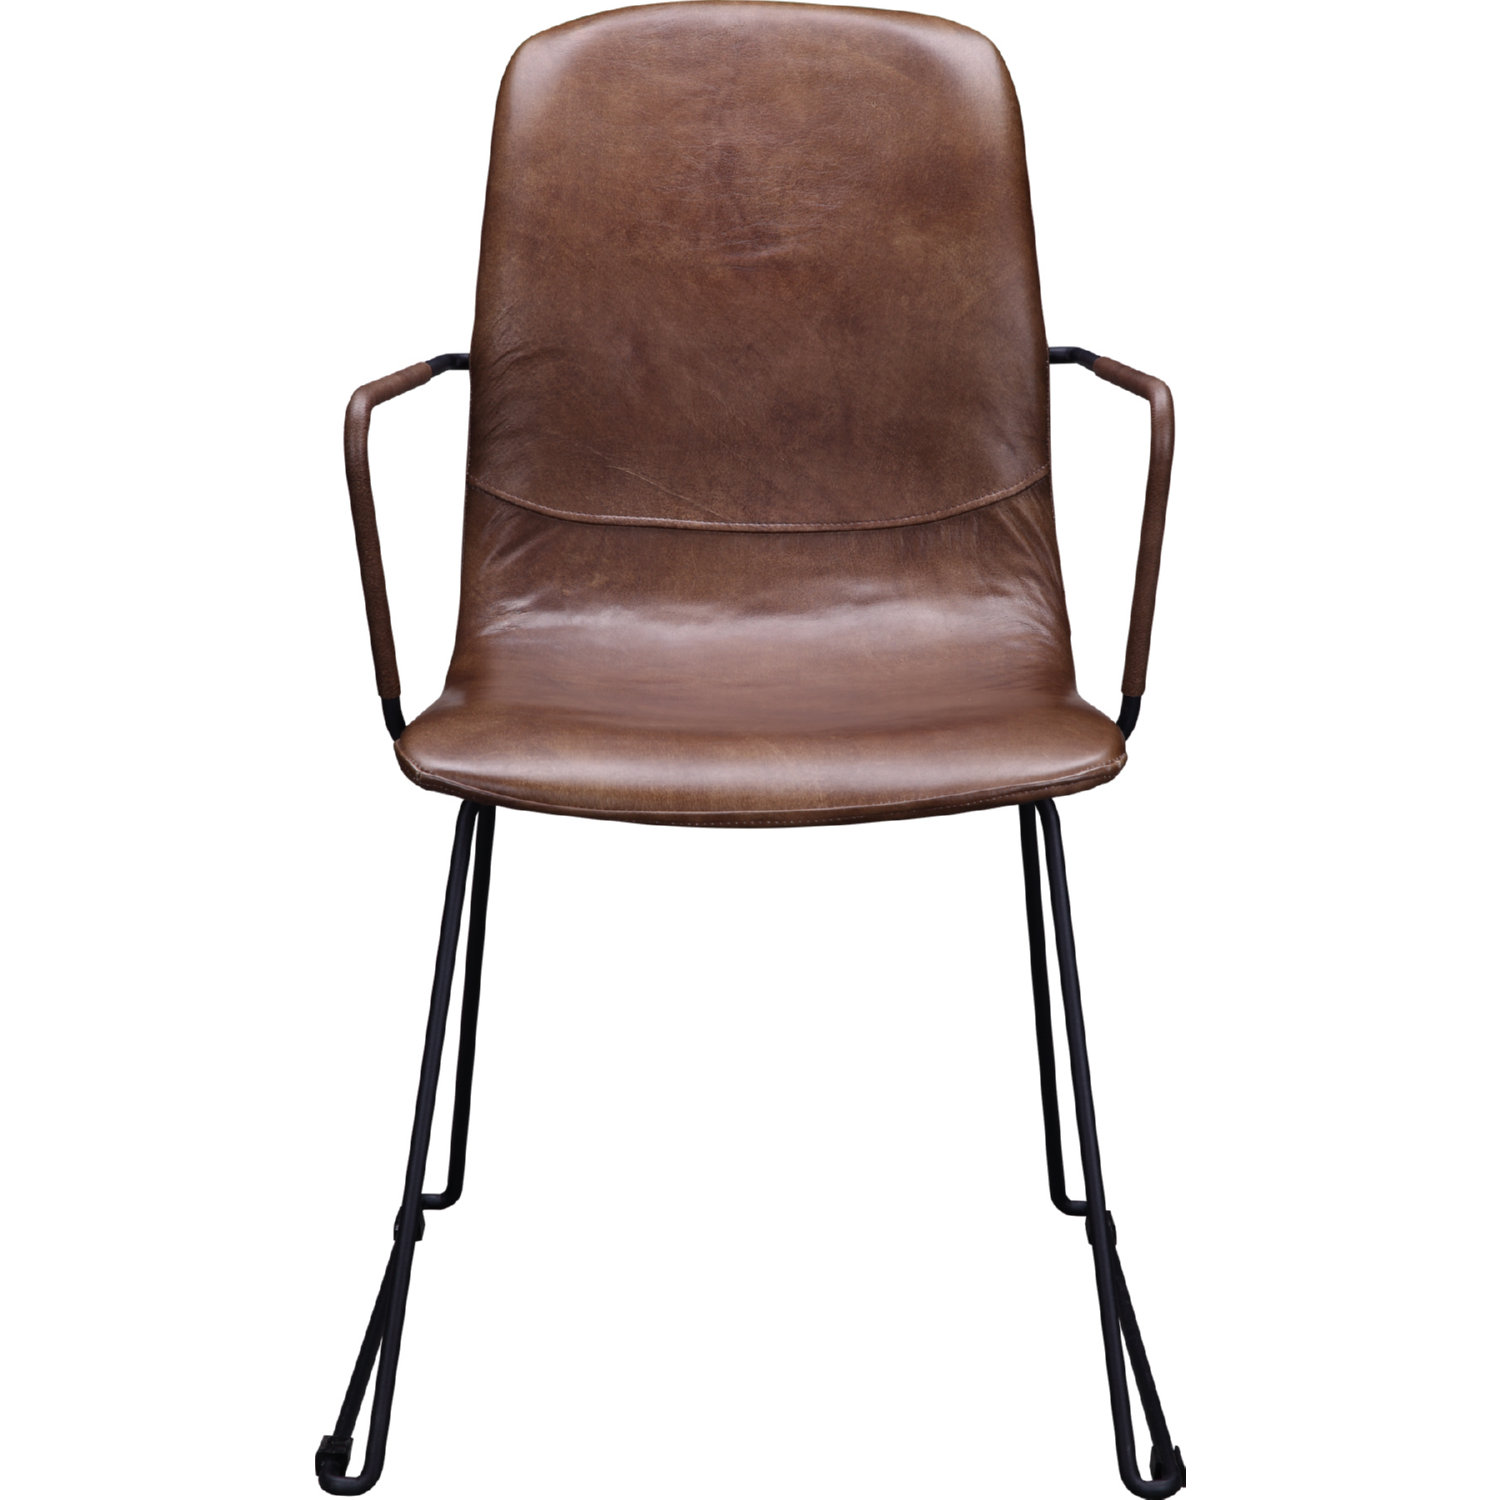 Incredible Bo Dining Chair In Brown Top Grain Leather Iron By Moes Home Collection Gmtry Best Dining Table And Chair Ideas Images Gmtryco